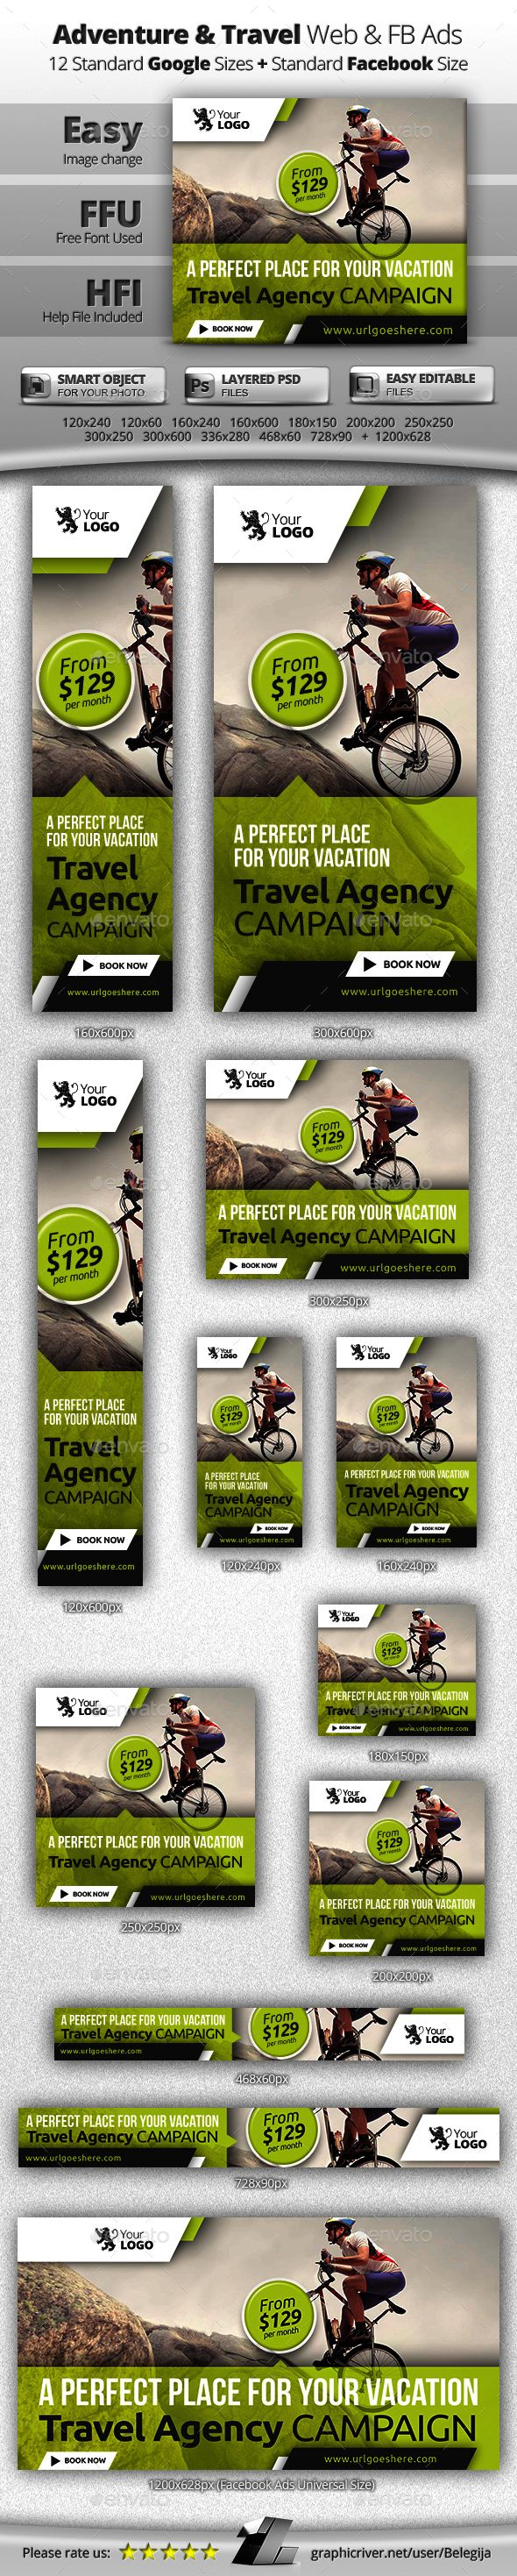 Travel Web & Facebook Banners - Banners & Ads Web Elements | Download: https://graphicriver.net/item/travel-web-facebook-banners/13003665?ref=sinzo